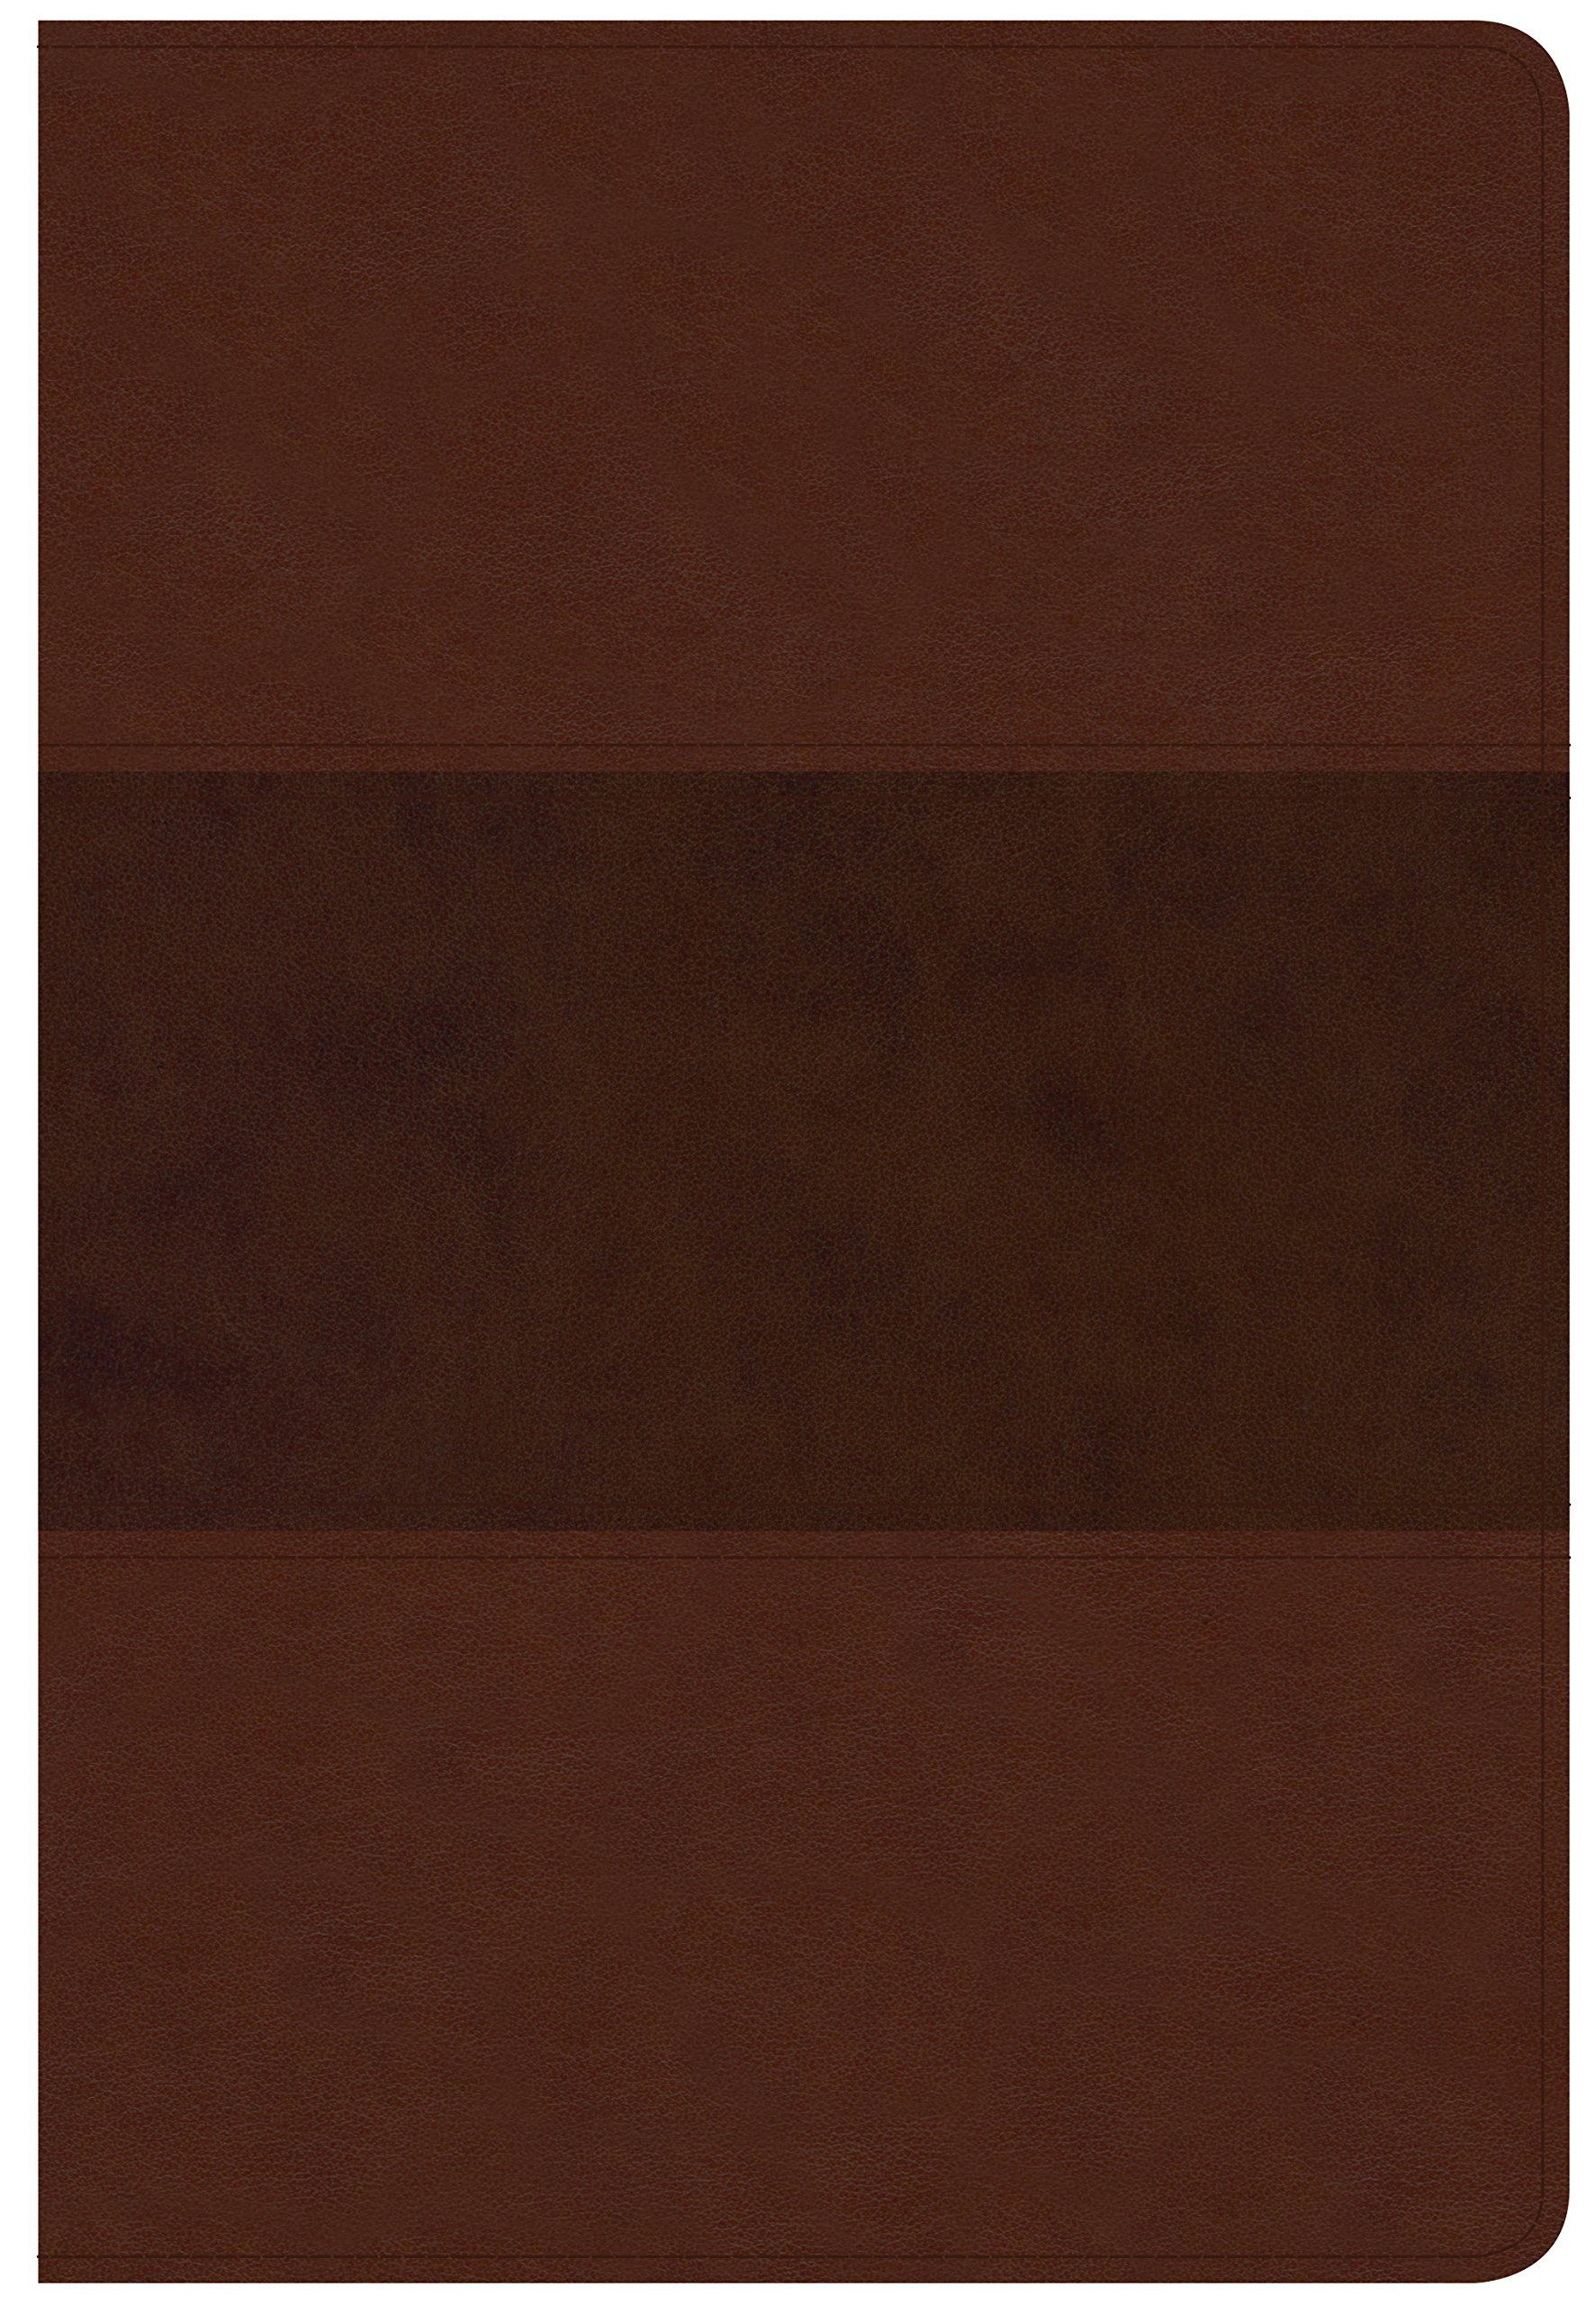 CSB Giant Print Reference Bible, Saddle Brown LeatherTouch, Indexed